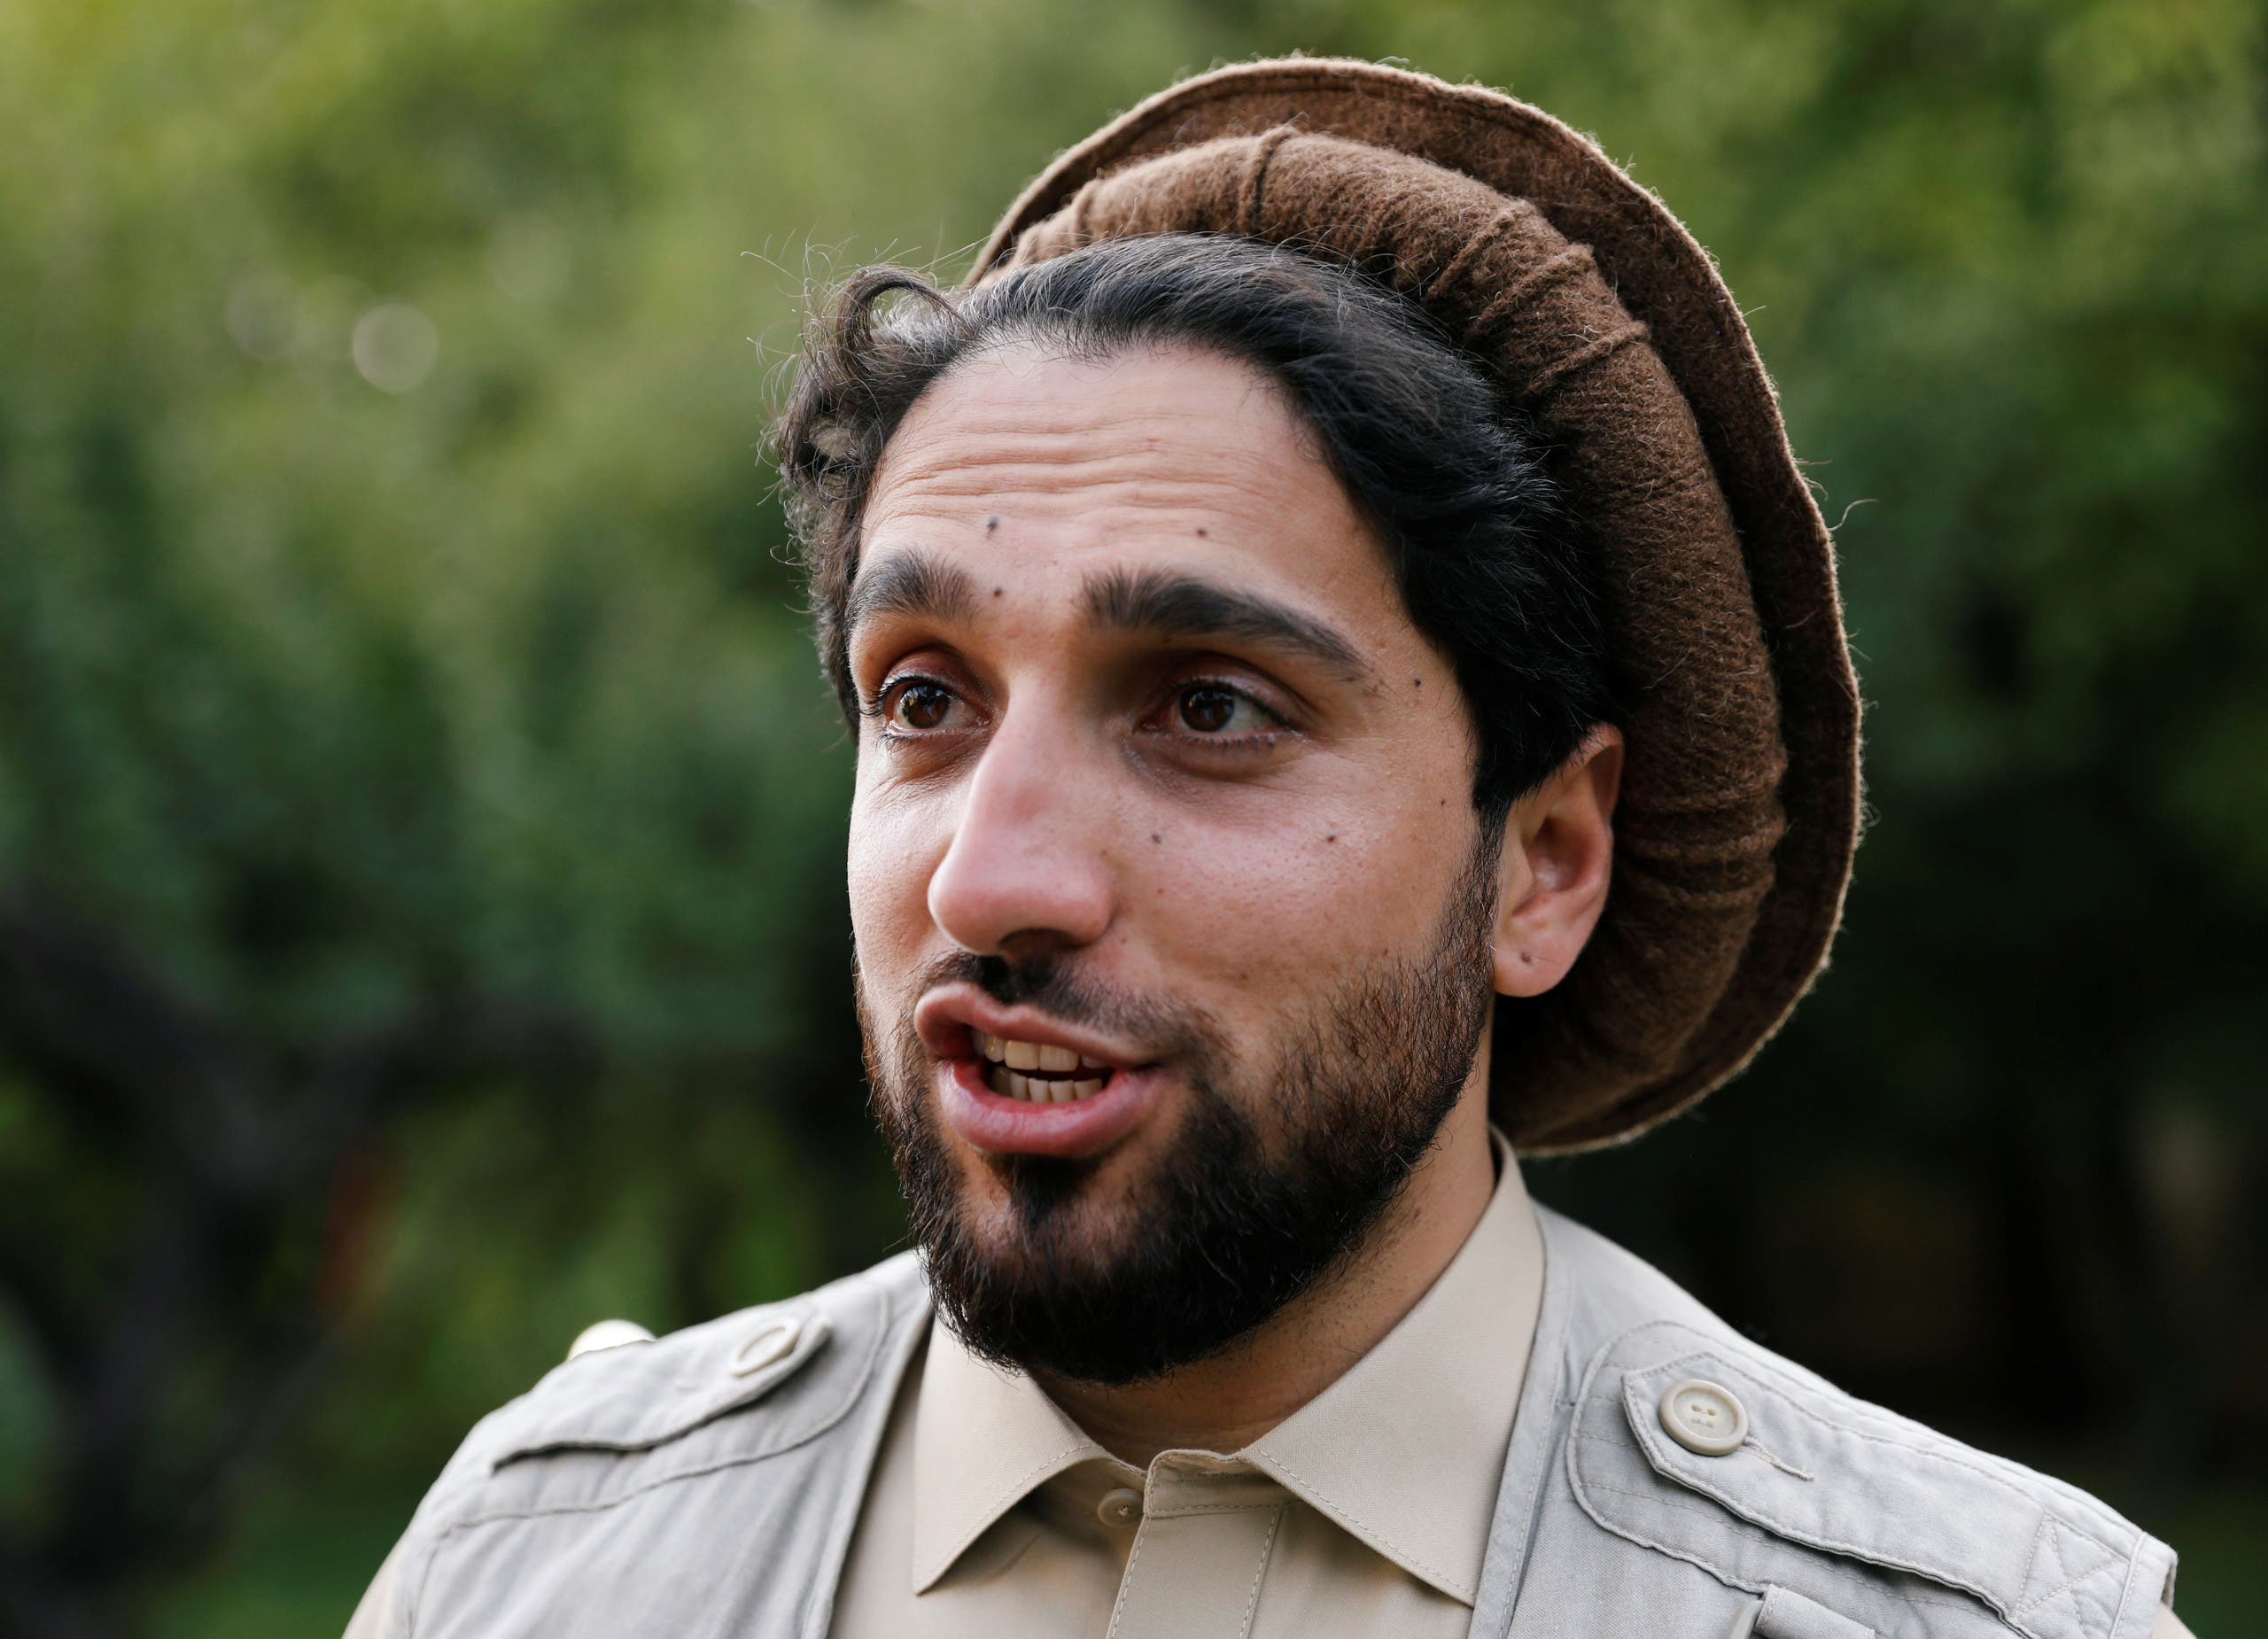 Ahmad Massoud, son of the slain hero of the anti-Soviet resistance, Ahmad Shah Massoud, speaks during an interview at his house in Bazarak, Panjshir province Afghanistan September 5, 2019. Picture taken September 5, 2019. (Reuters)